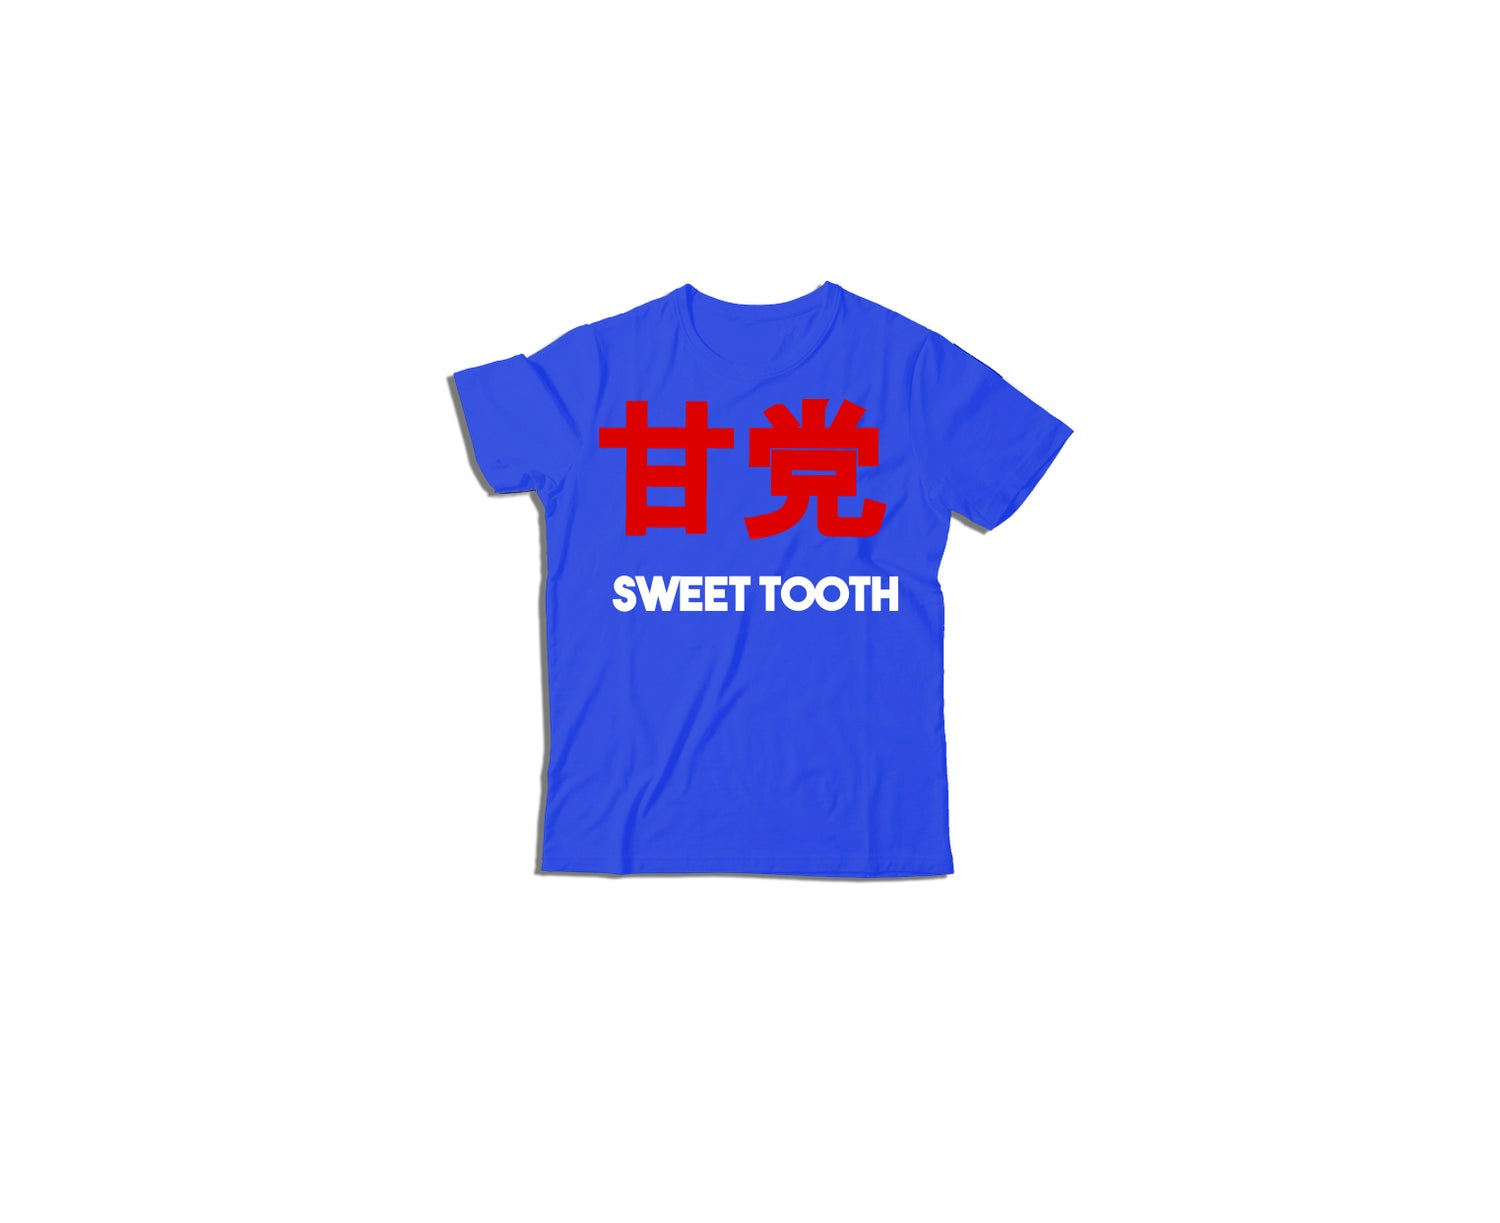 Image of Amato Kids Tee Royal Blue W White and Red